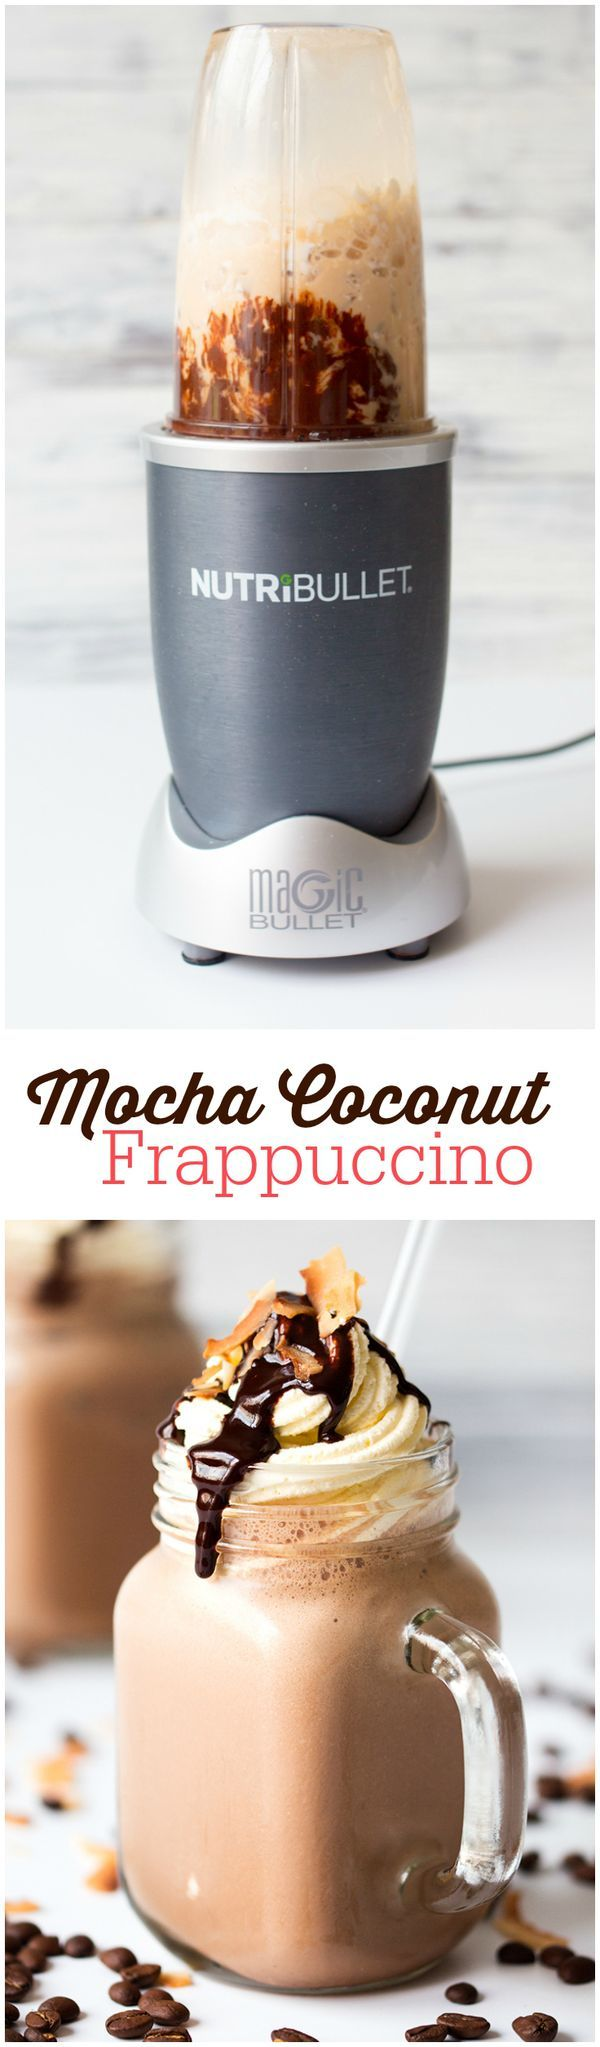 Mocha Coconut Frappuccino -  tastes like the one at Starbucks. Warning - they are addicting! http://produccioneslara.com/pelicula-polleros-venganza.php